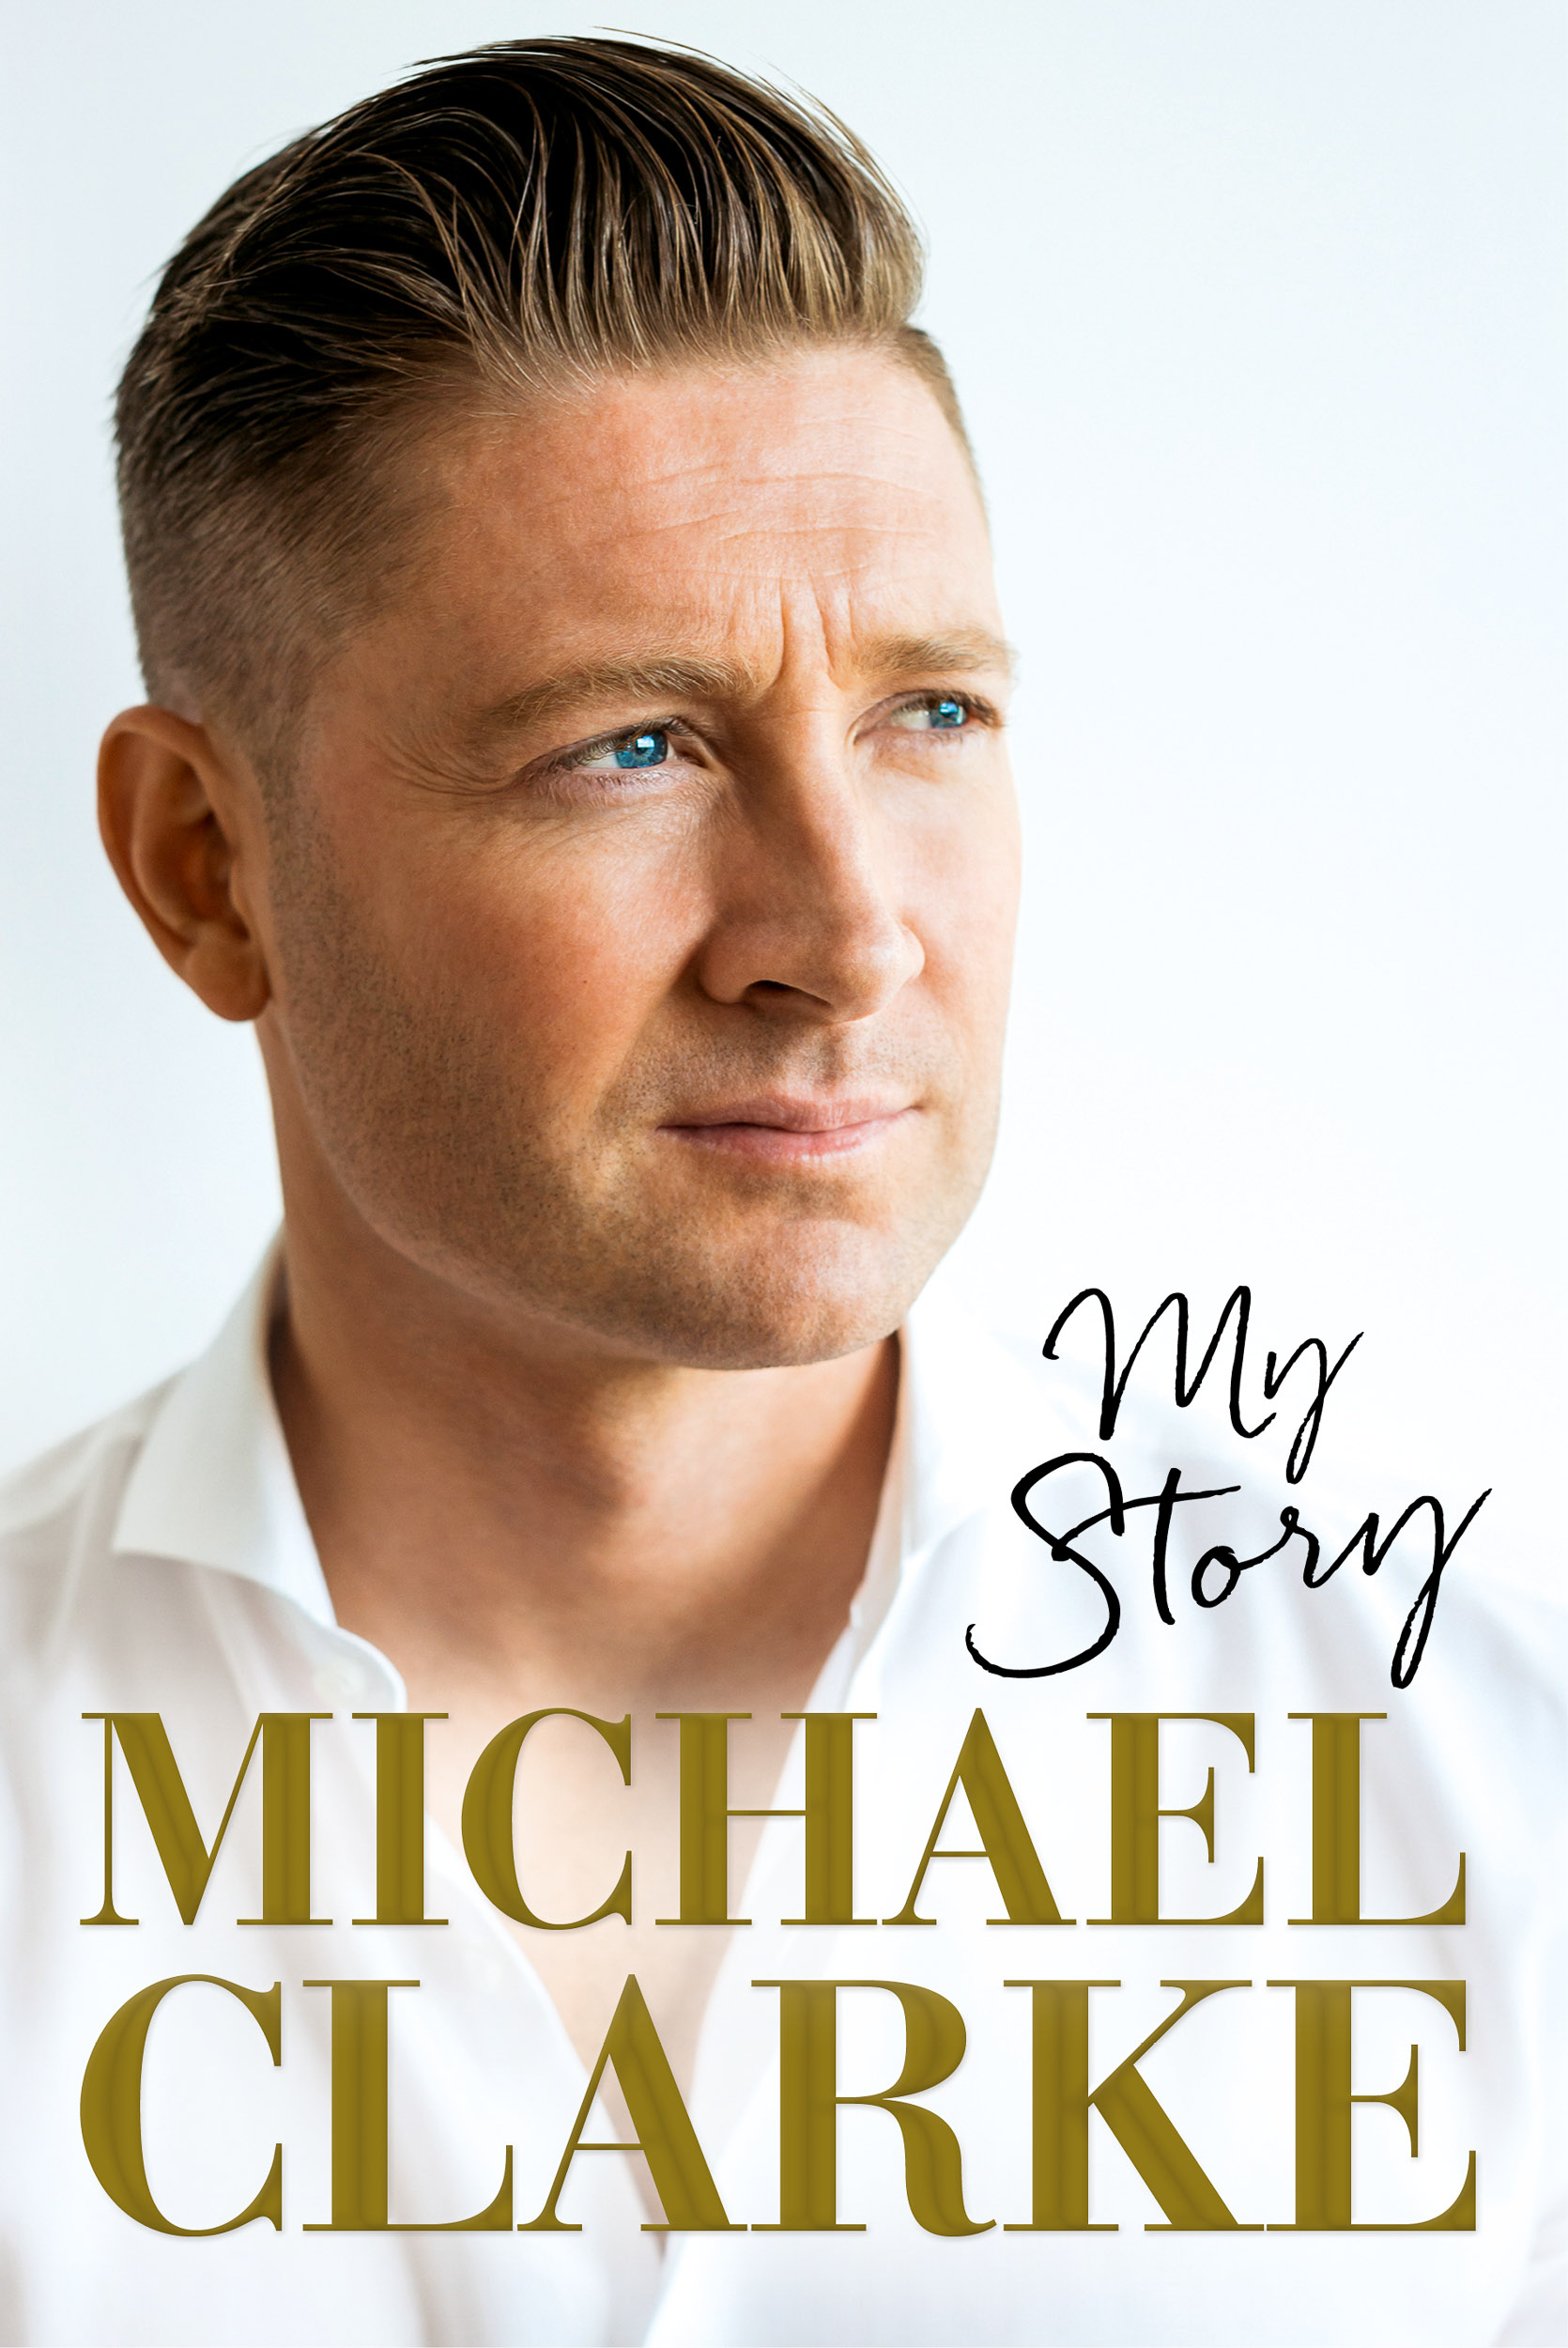 Michael Clarke Book Cover